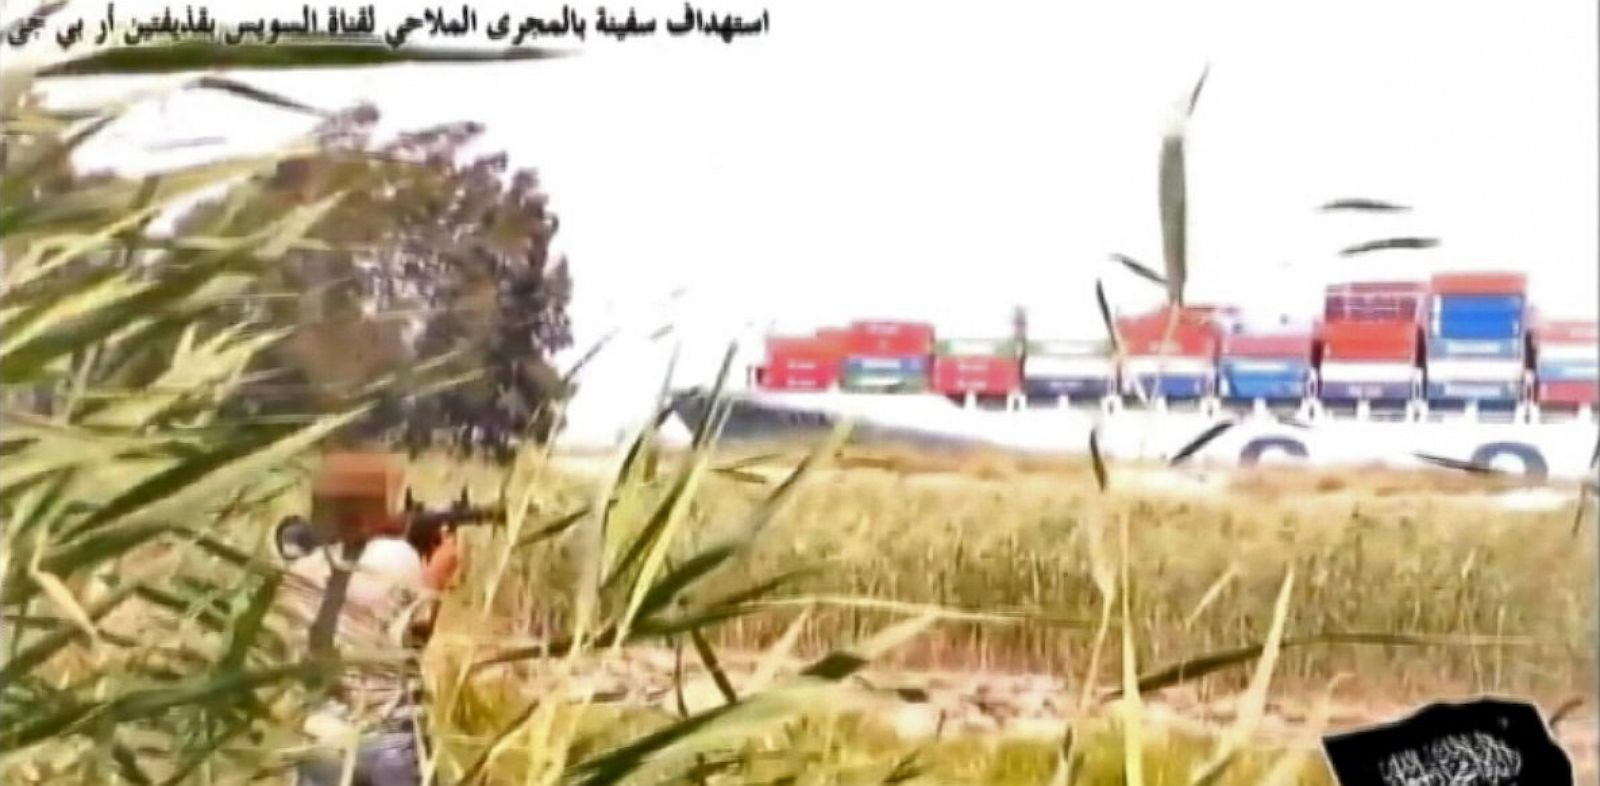 PHOTO: Person aims rocket propelled grenade launcher at ship in Suez Canal